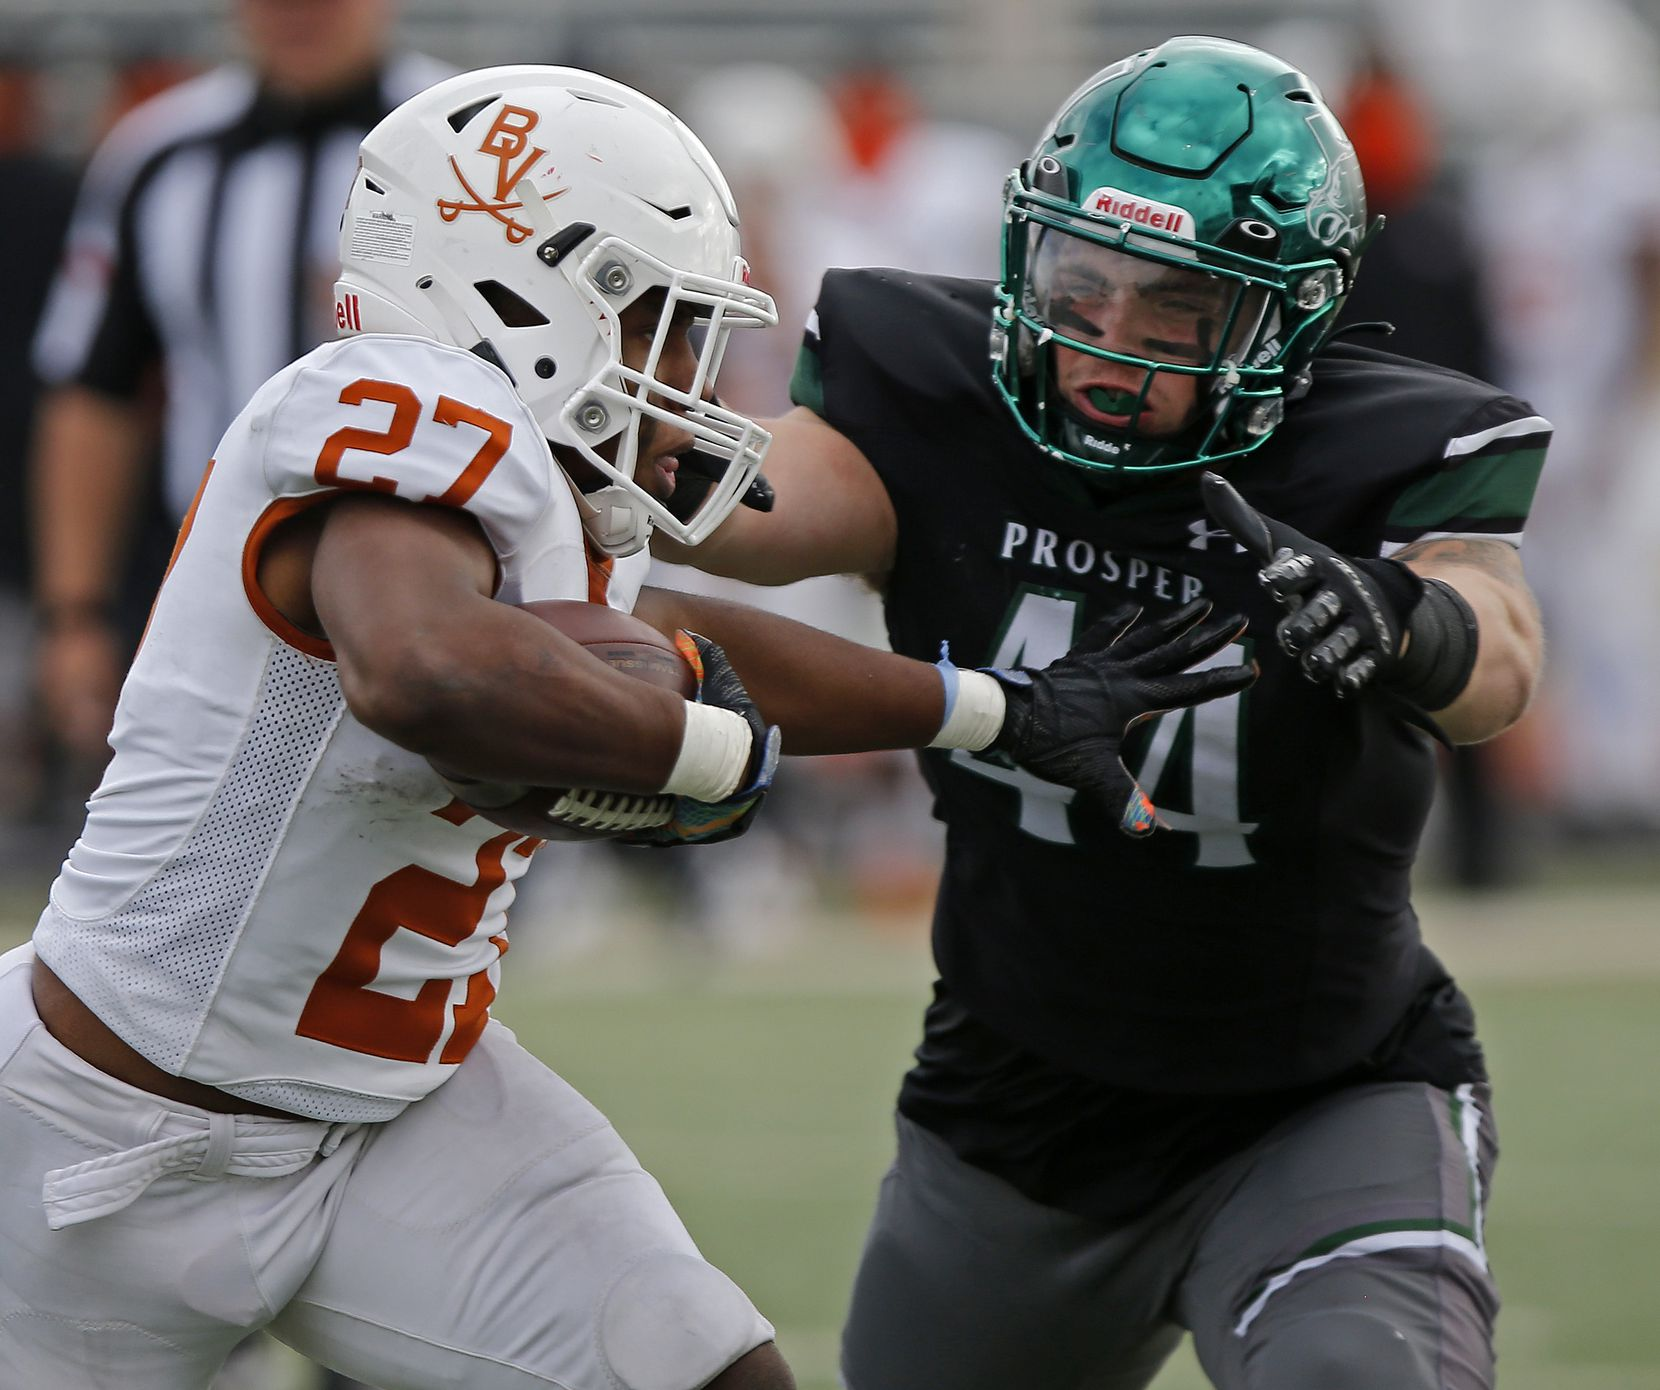 Arlington Bowie High School running back Kameron Sanders (27) tires to stiff arm Prosper High School middle linebacker Aidan Siano (44) during the second half as Prosper High School played Arlington Bowie High School in a Class 6A Division II area-round playoff game at Mustang-Panther Stadium in Grapevine on Saturday, December 19, 2020.  (Stewart F. House/Special Contributor)